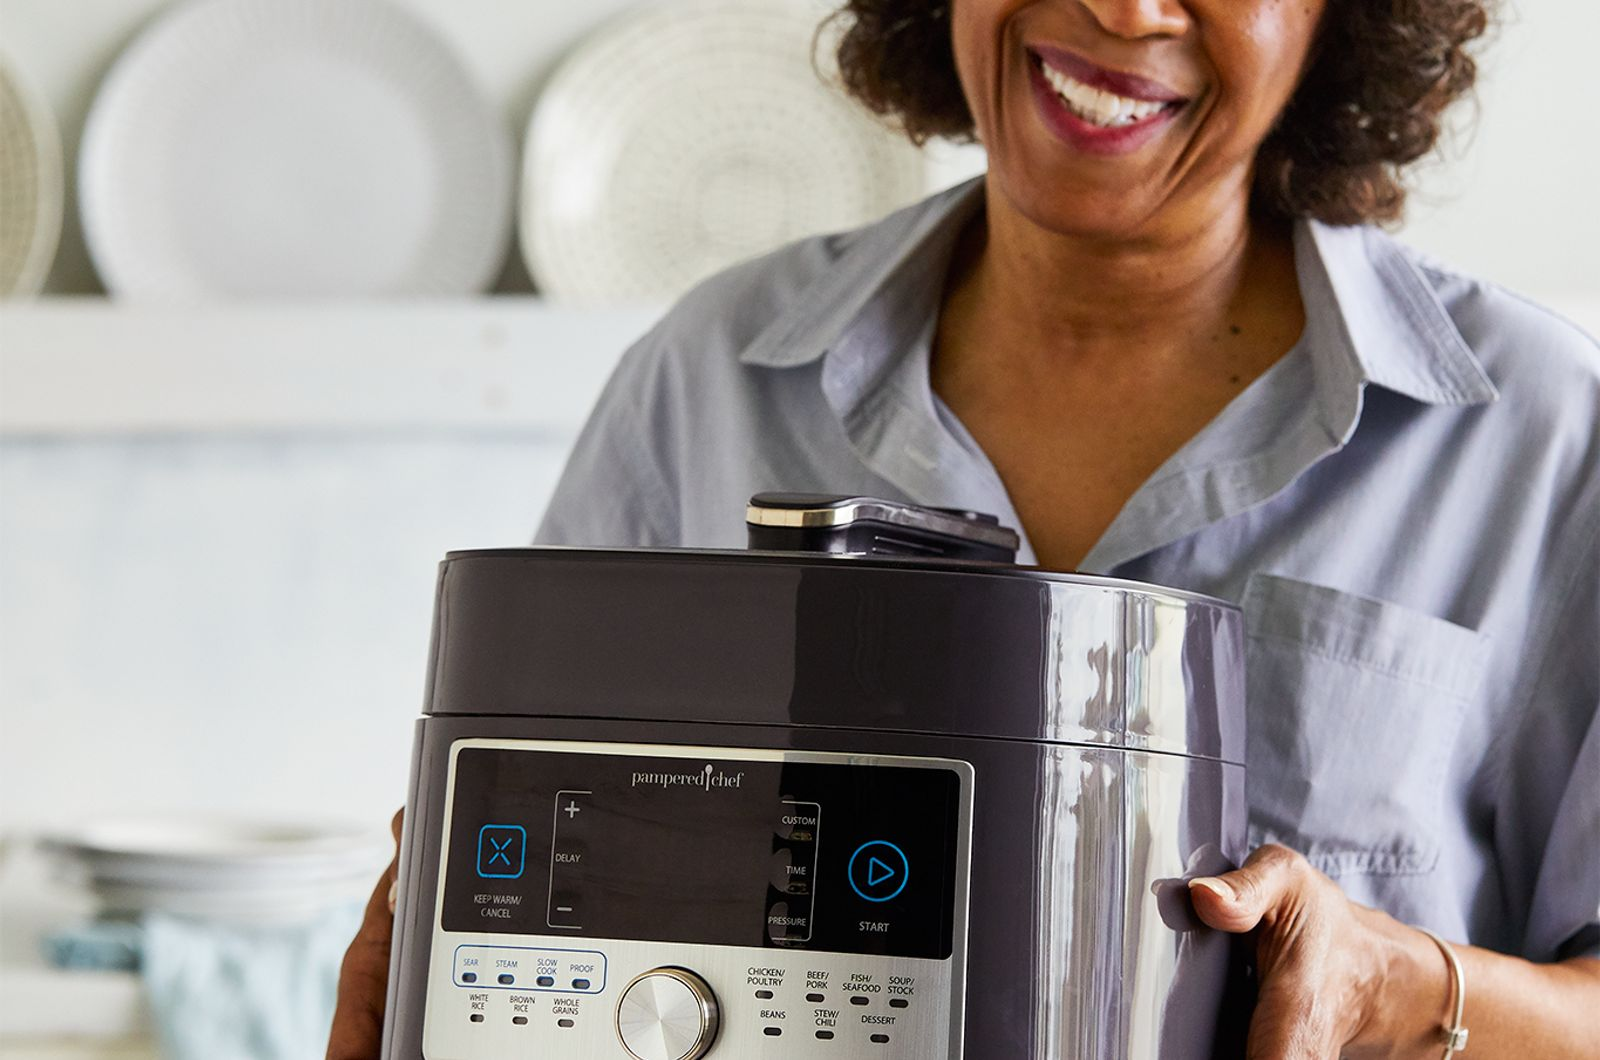 How to Clean a Pampered Chef Pressure Cooker